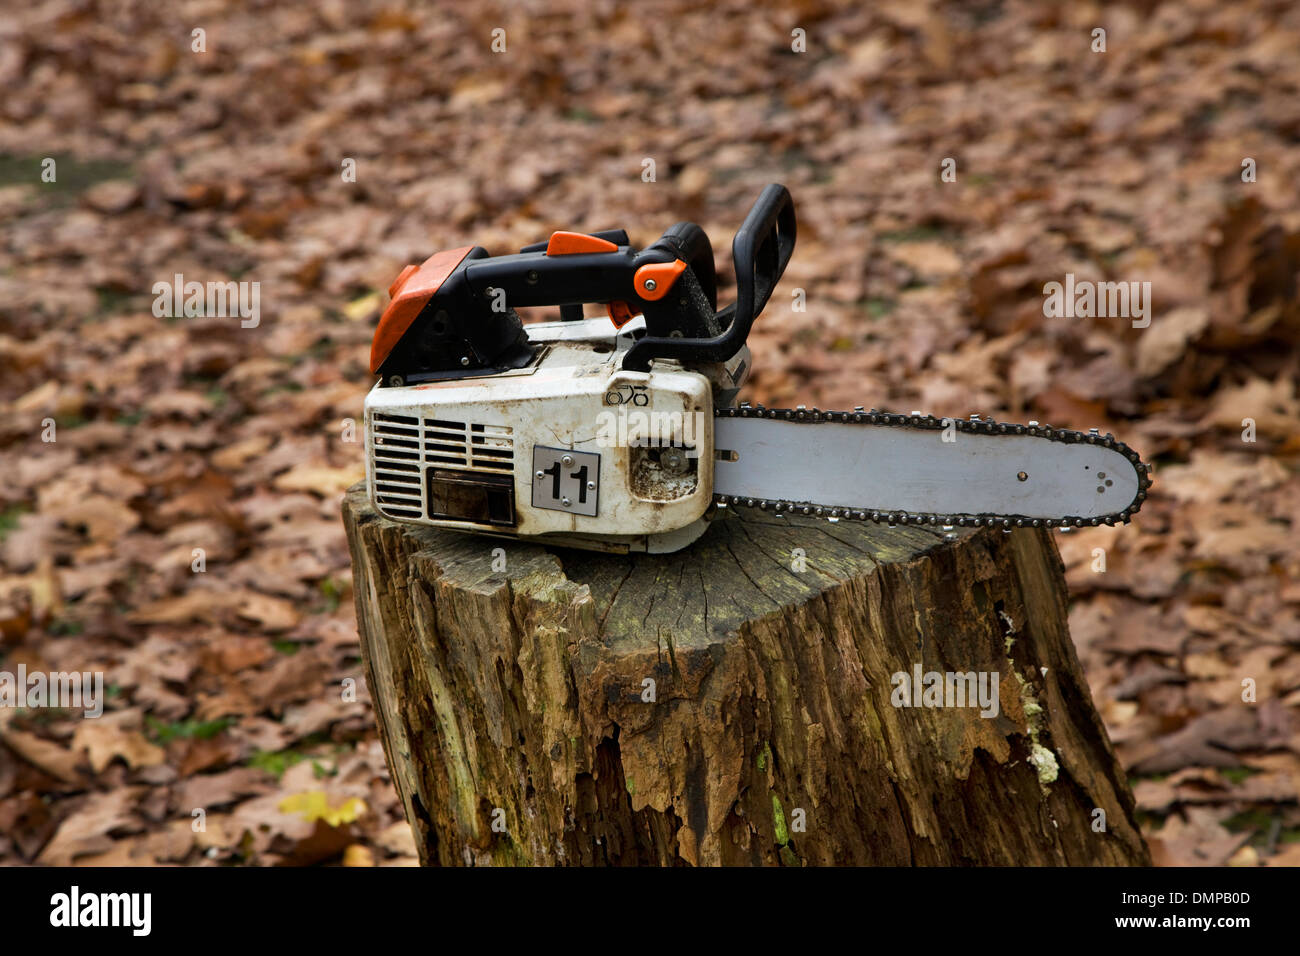 Chain saw, logging and forestry equipment resting on stump of cut tree in forest - Stock Image